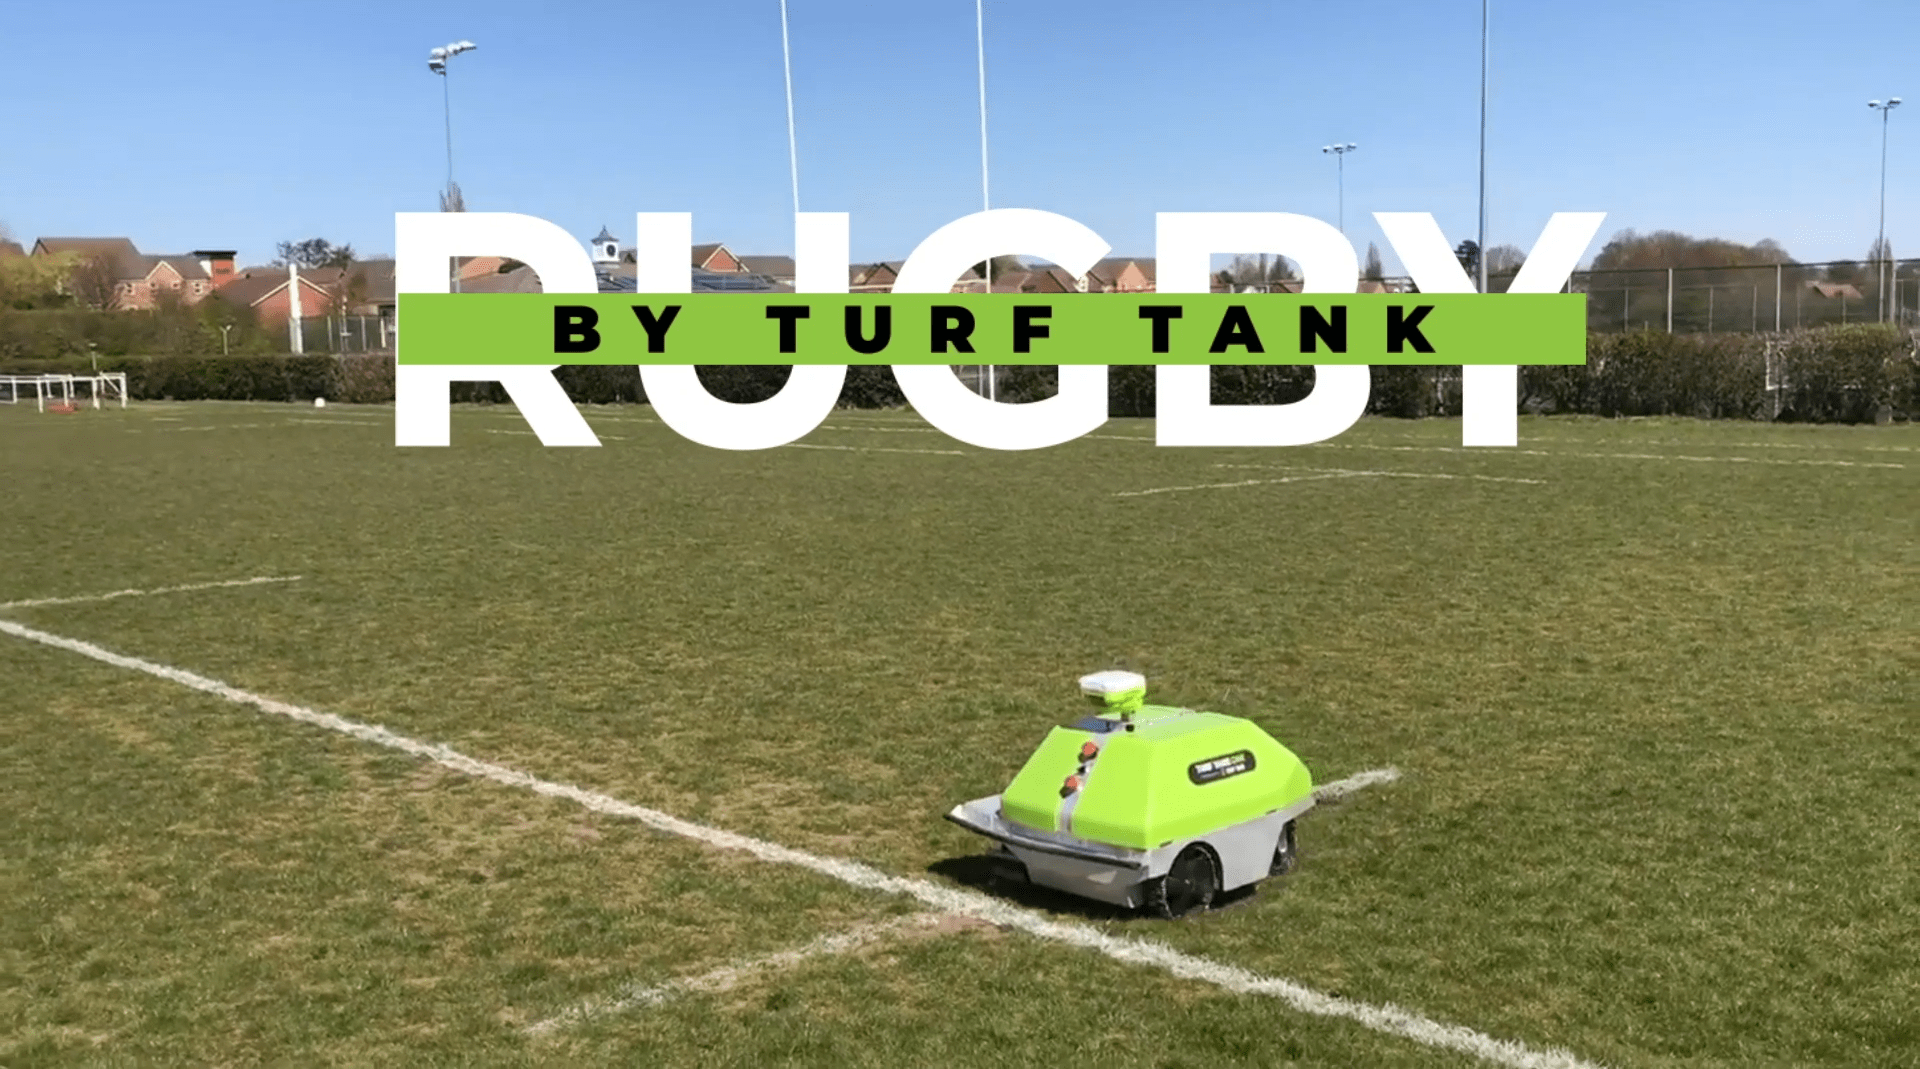 Turf Tank Robot for Rugby pitch marking